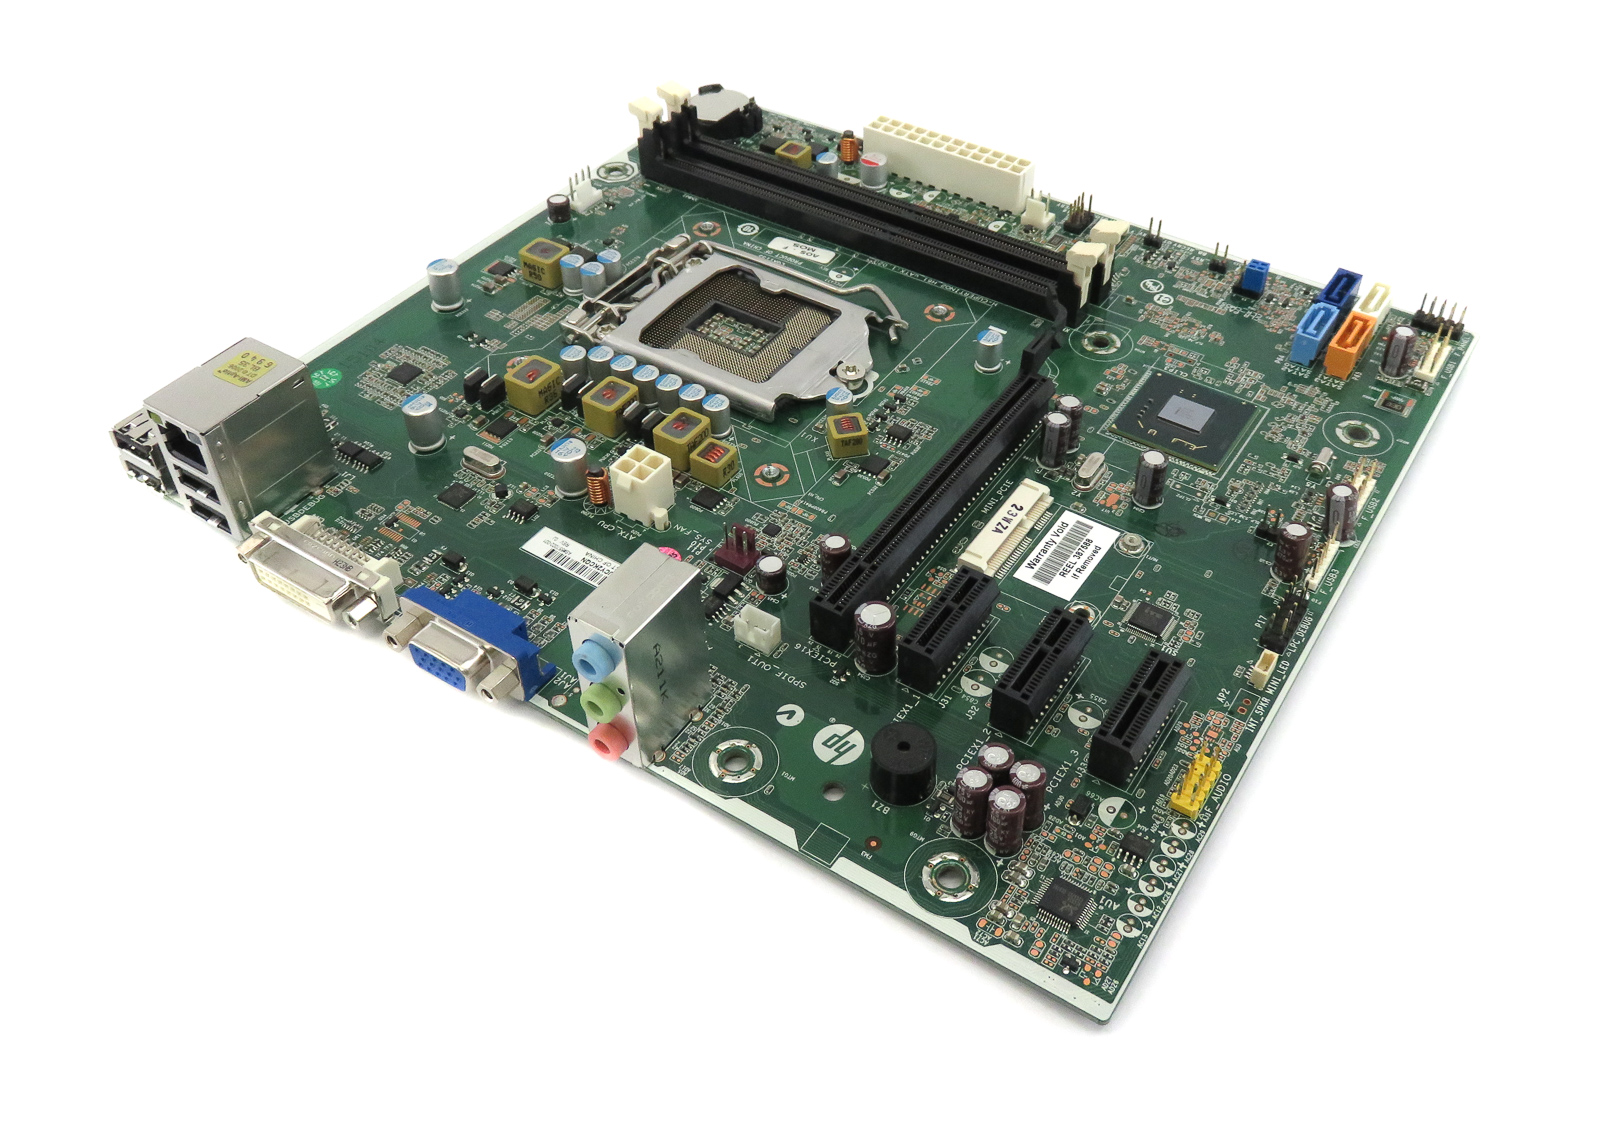 HP Pro 657002-001 Intel Socket LGA1155 Motherboard - H-CUPERTINO2_H61_uATX: 1.02